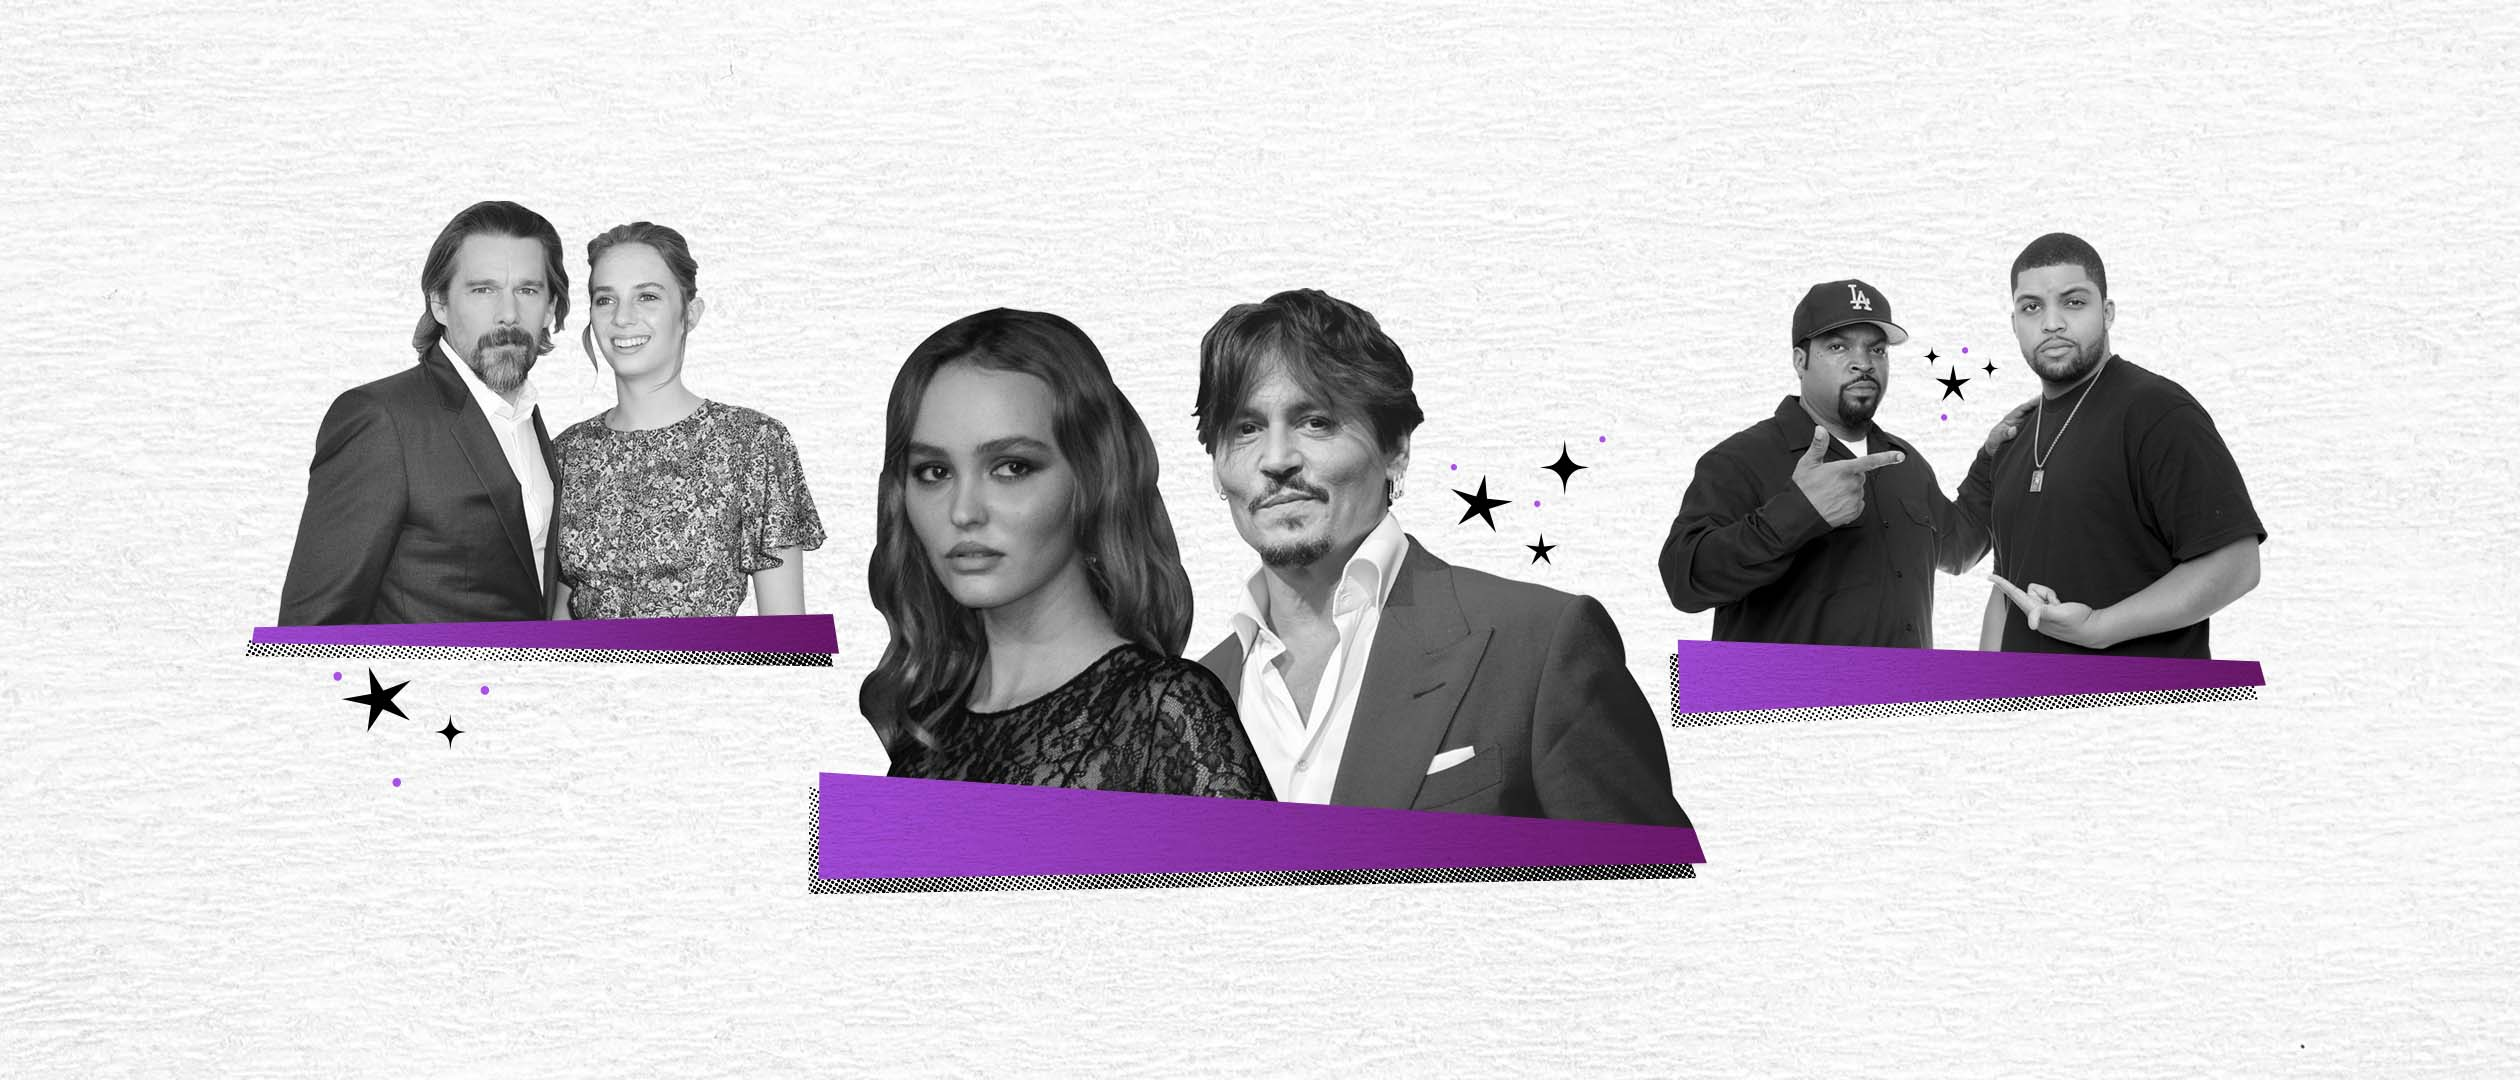 Voyagers  star Lily-Rose Depp leads a new wave of rising stars with famous parents